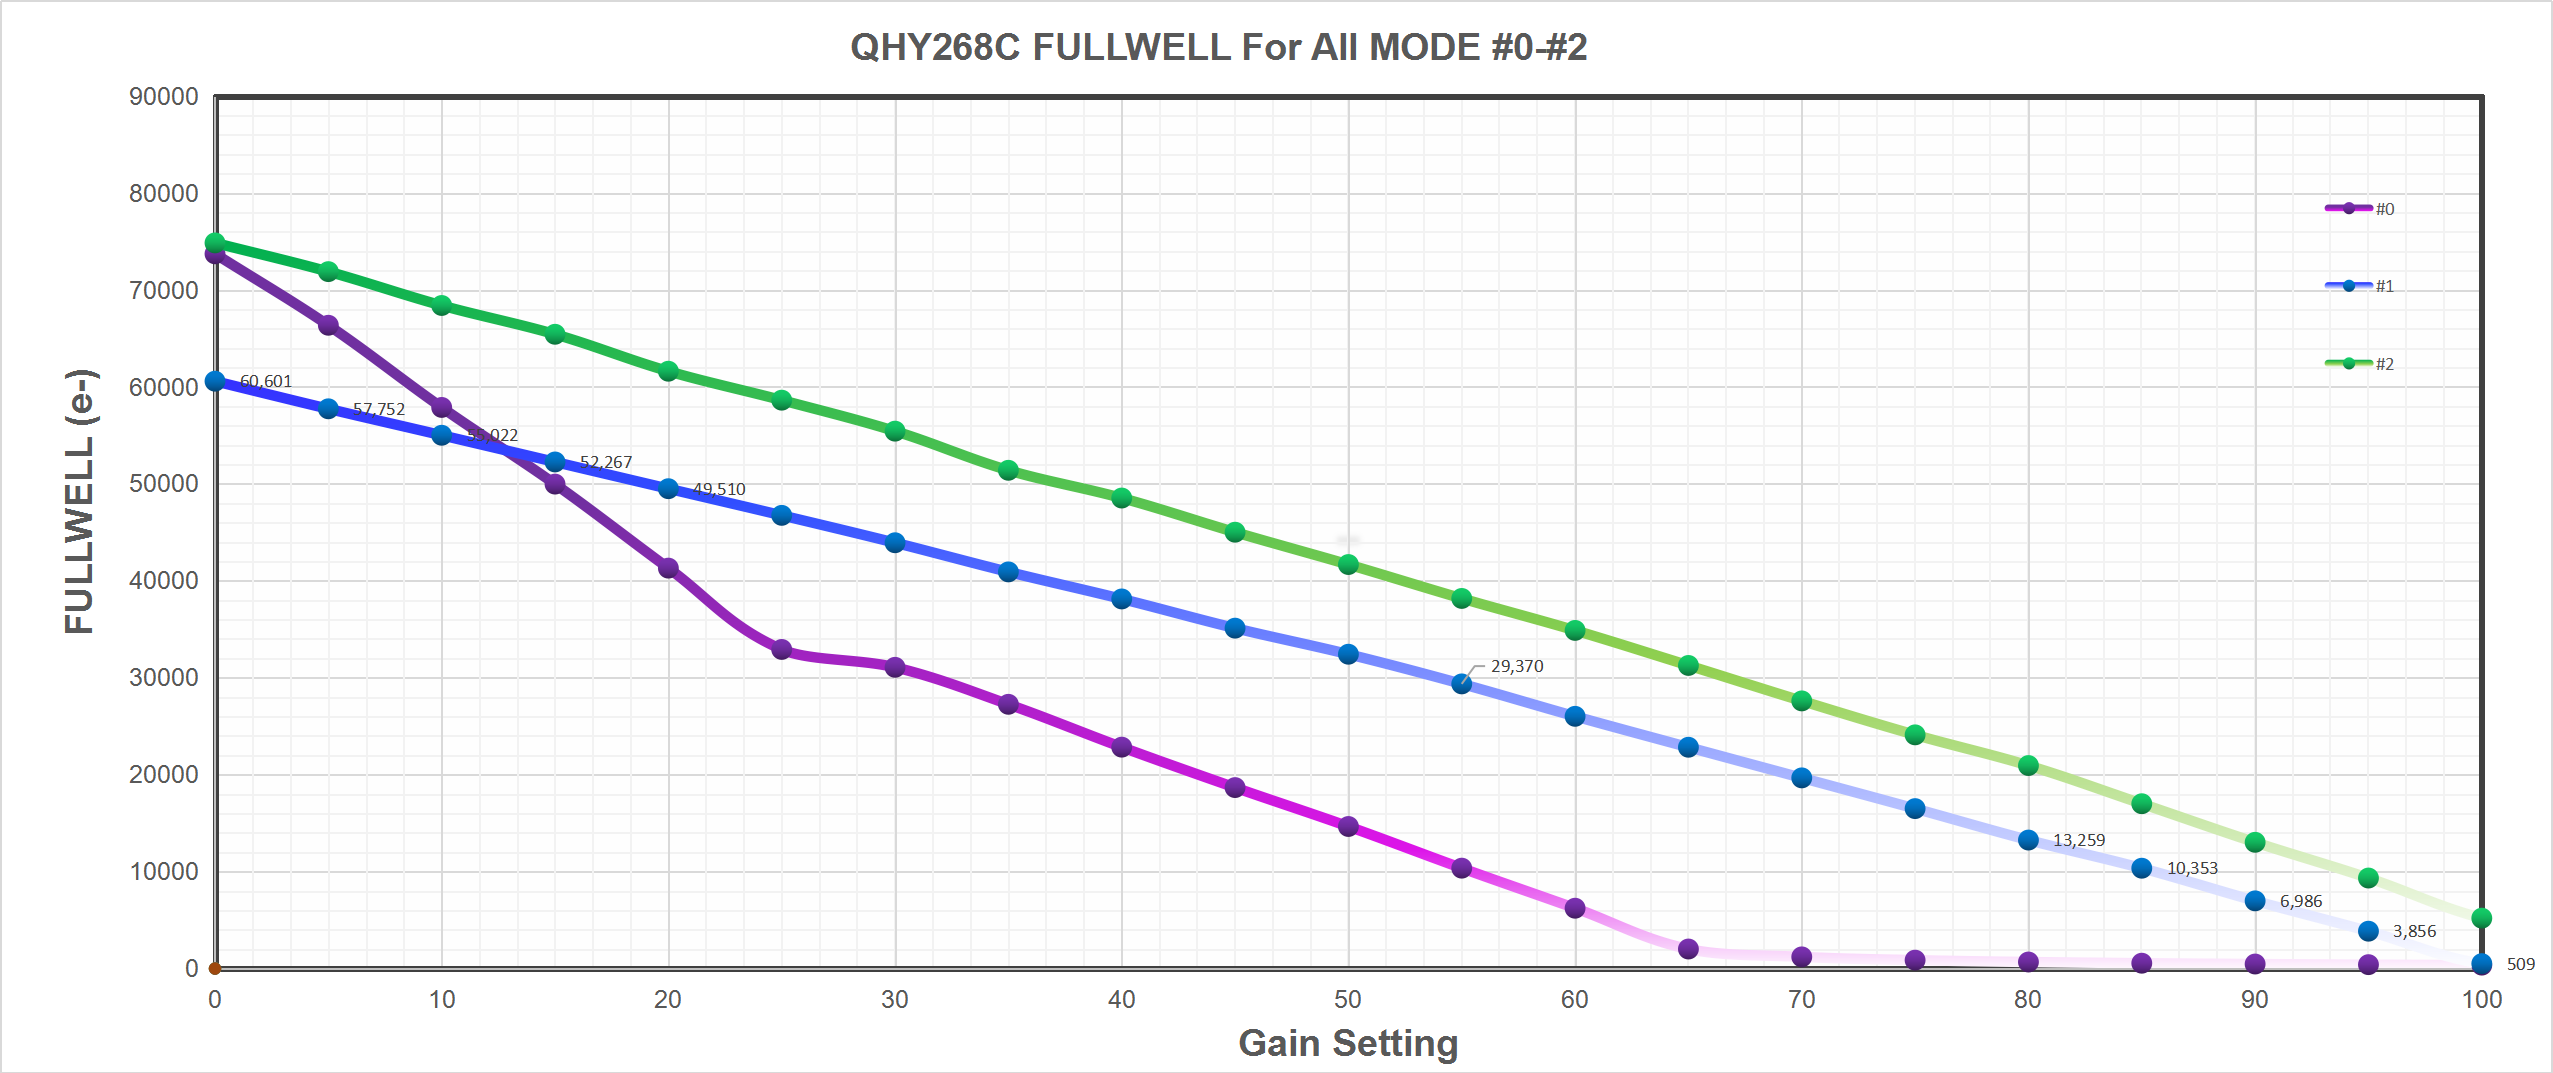 QHY268C Fullwell For All Mode